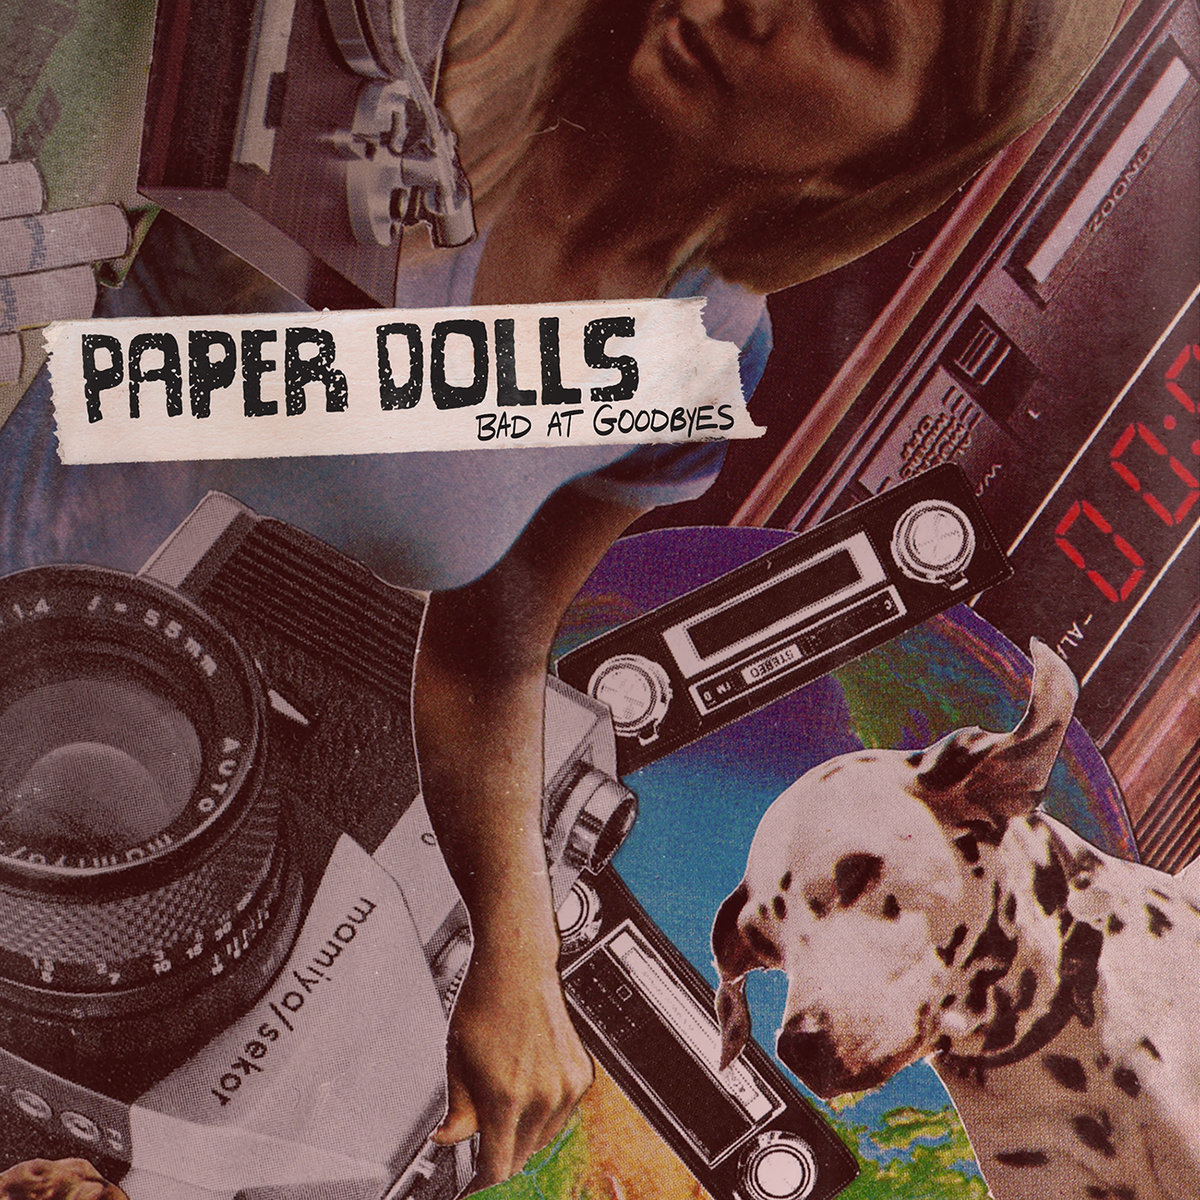 Paper Dolls - Bad At Goodbyes (Recorded, Mixed and Mastered)